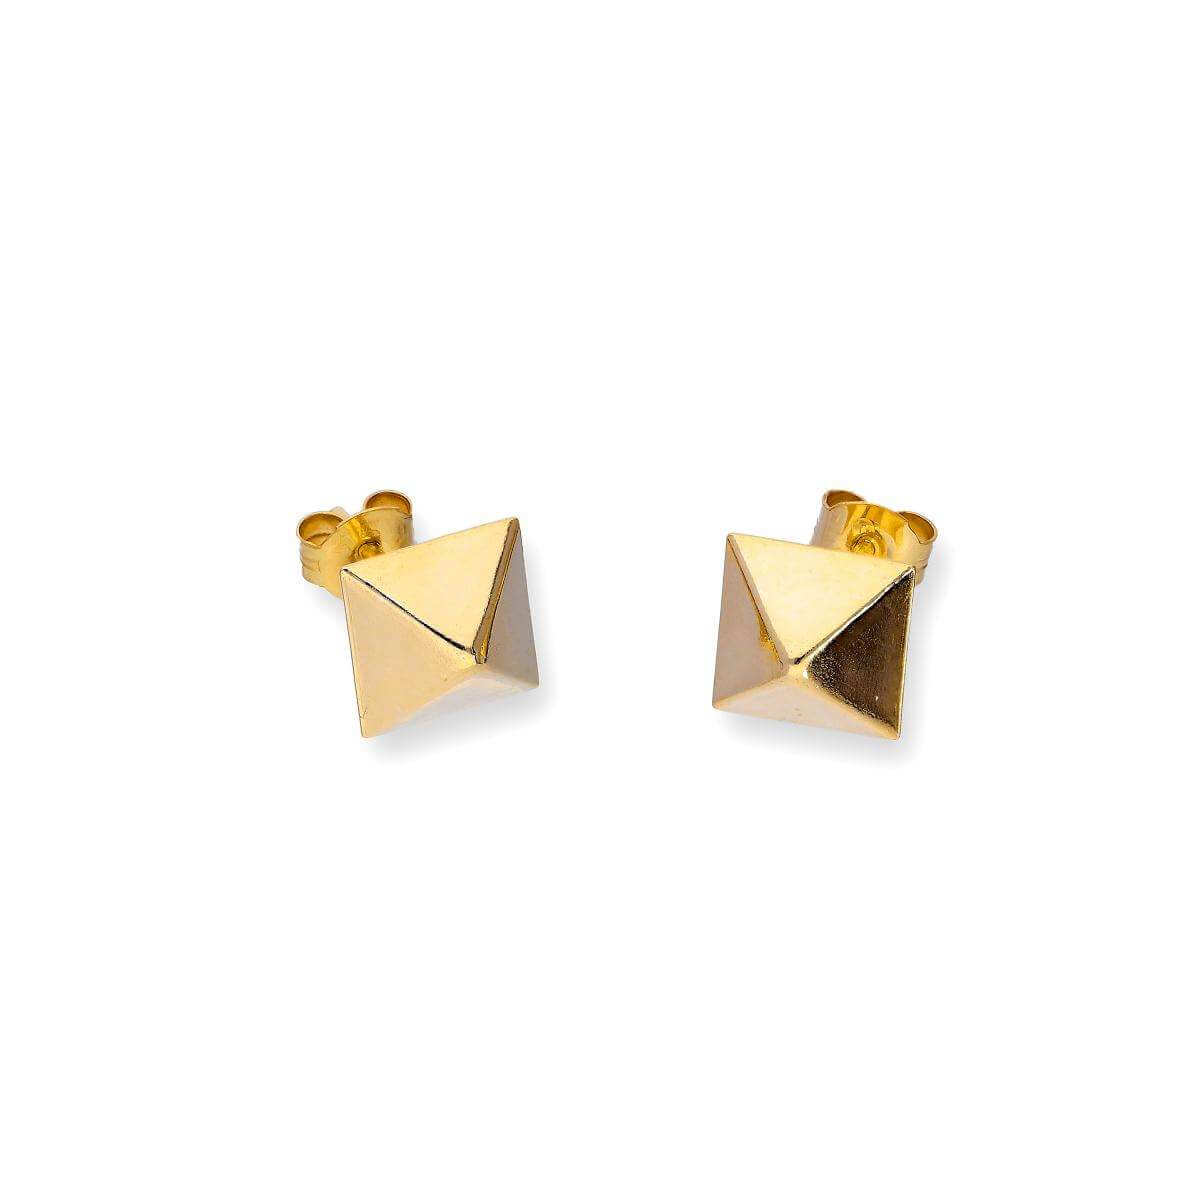 studs from inch brass studsandspikes standard and stud item com antique pyramid cost pyramids spikes